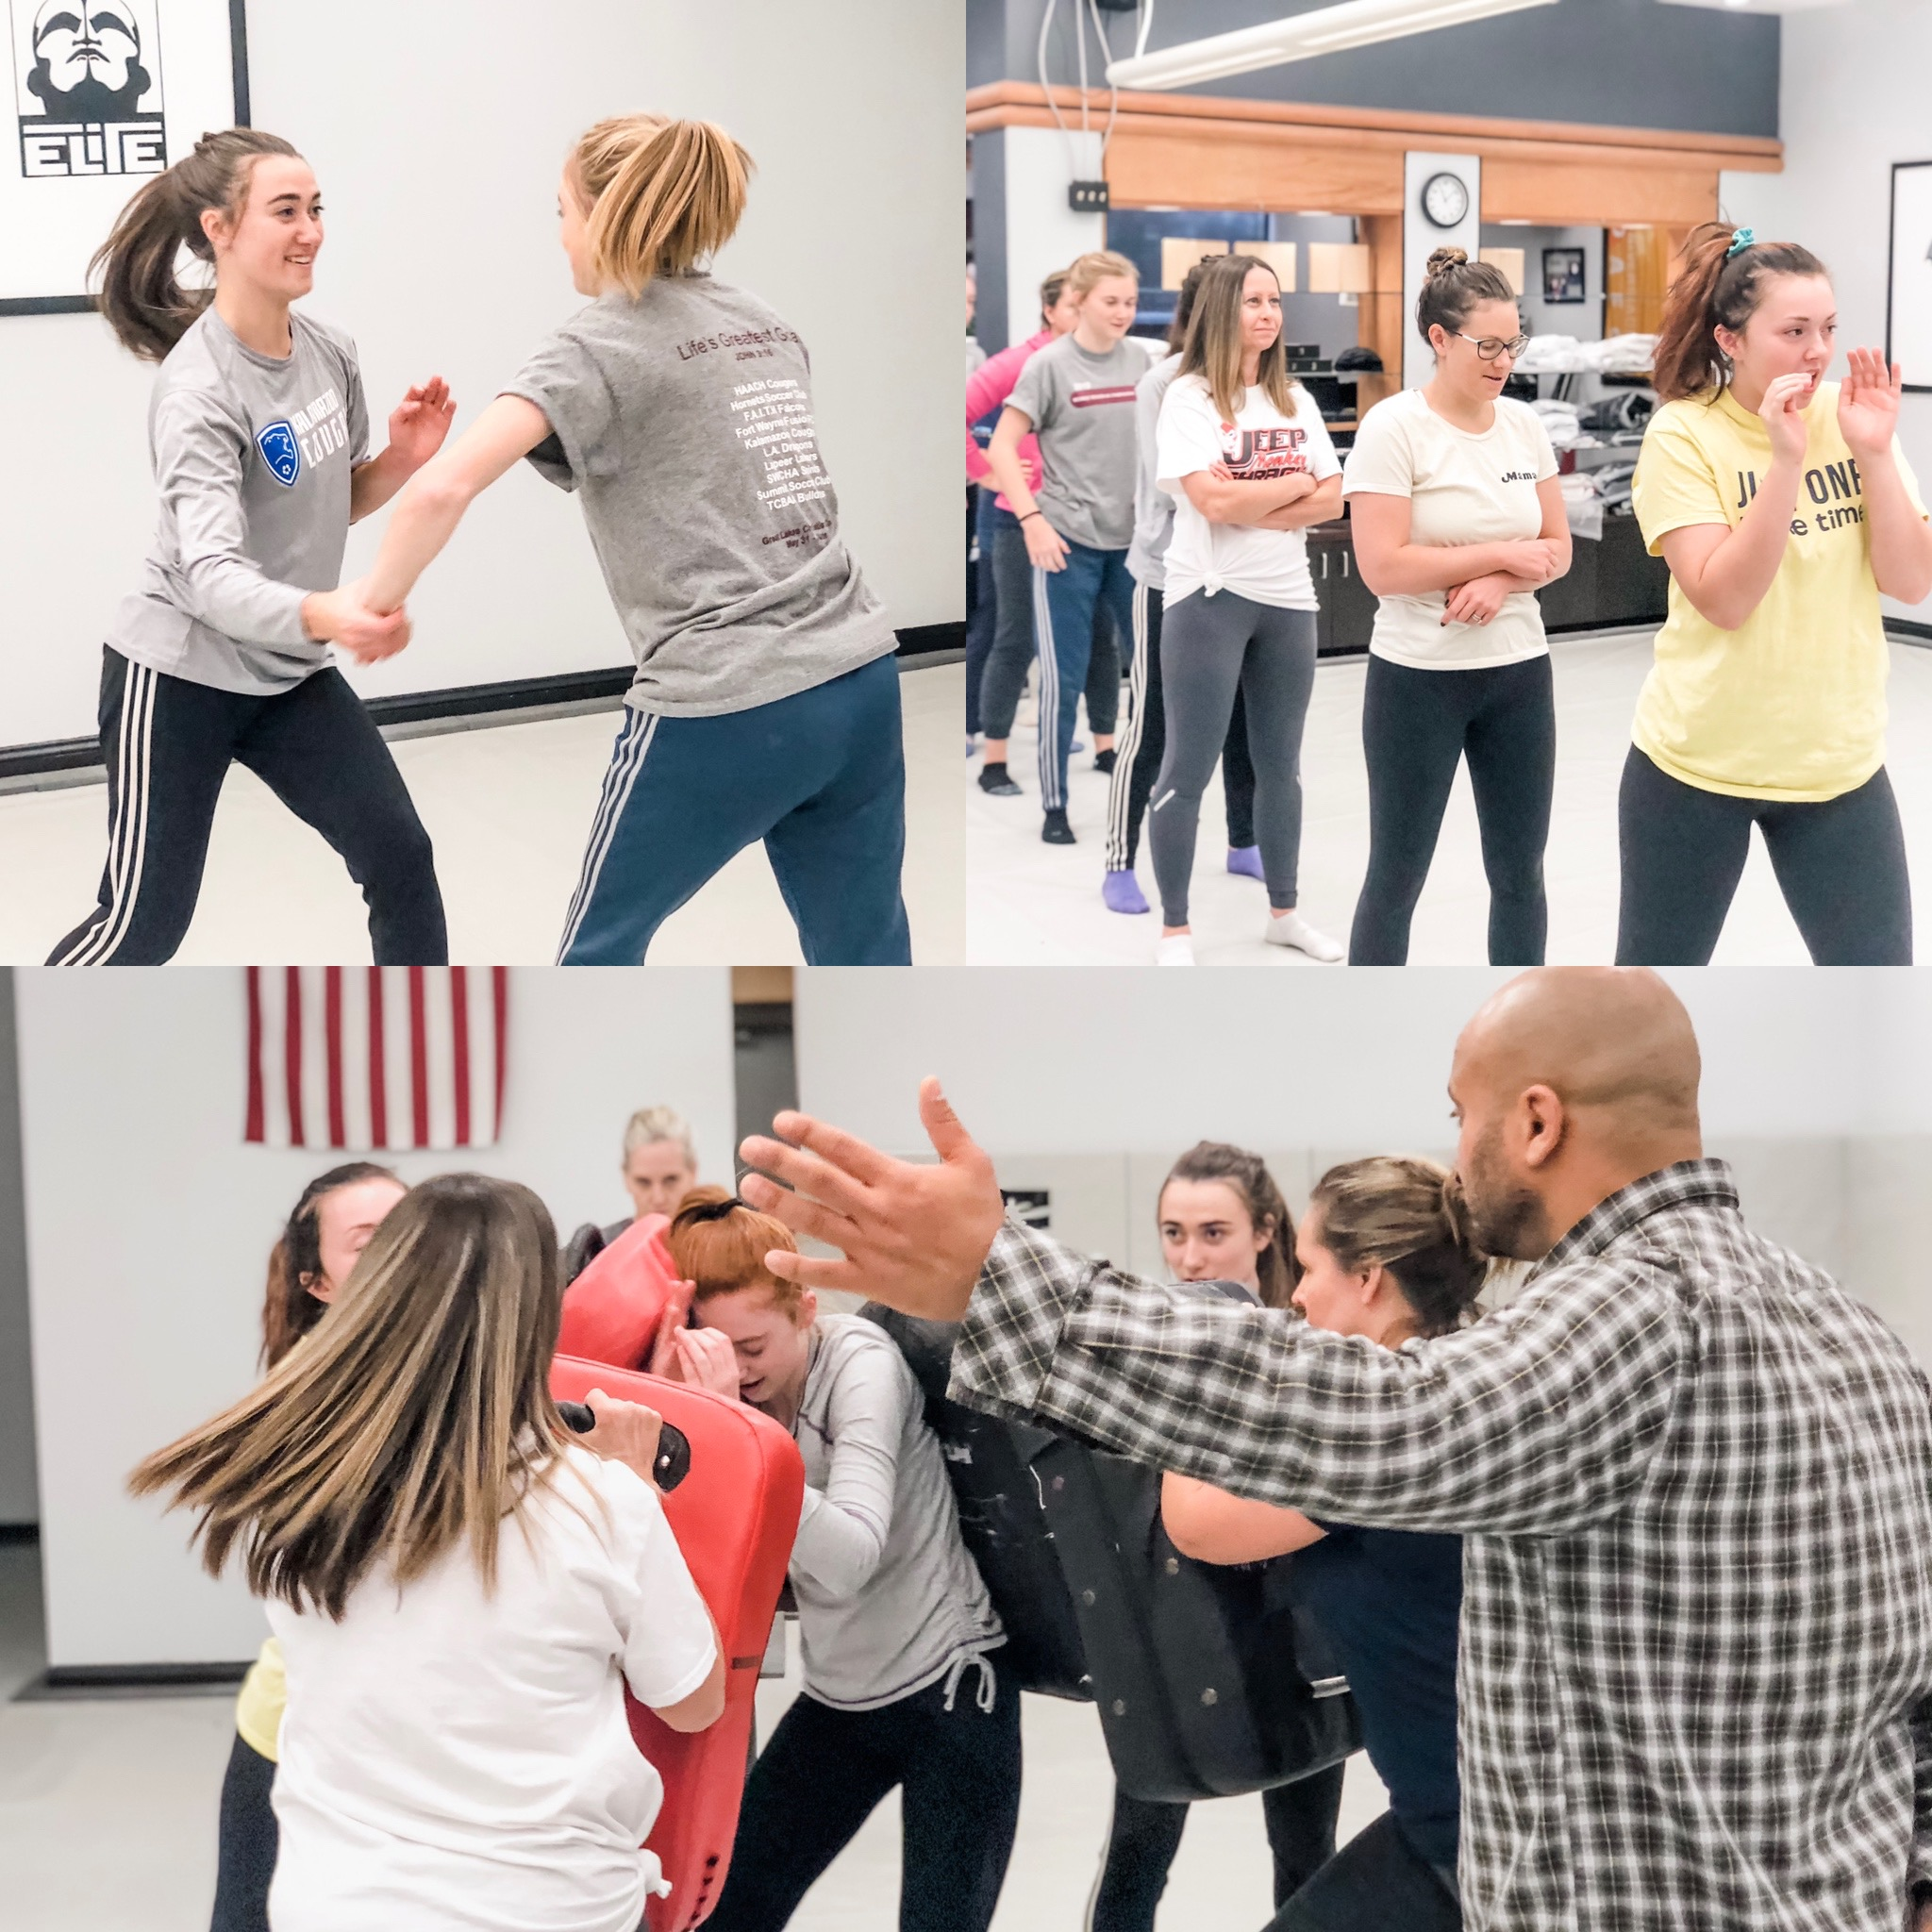 Women's self defense in Portage Michigan